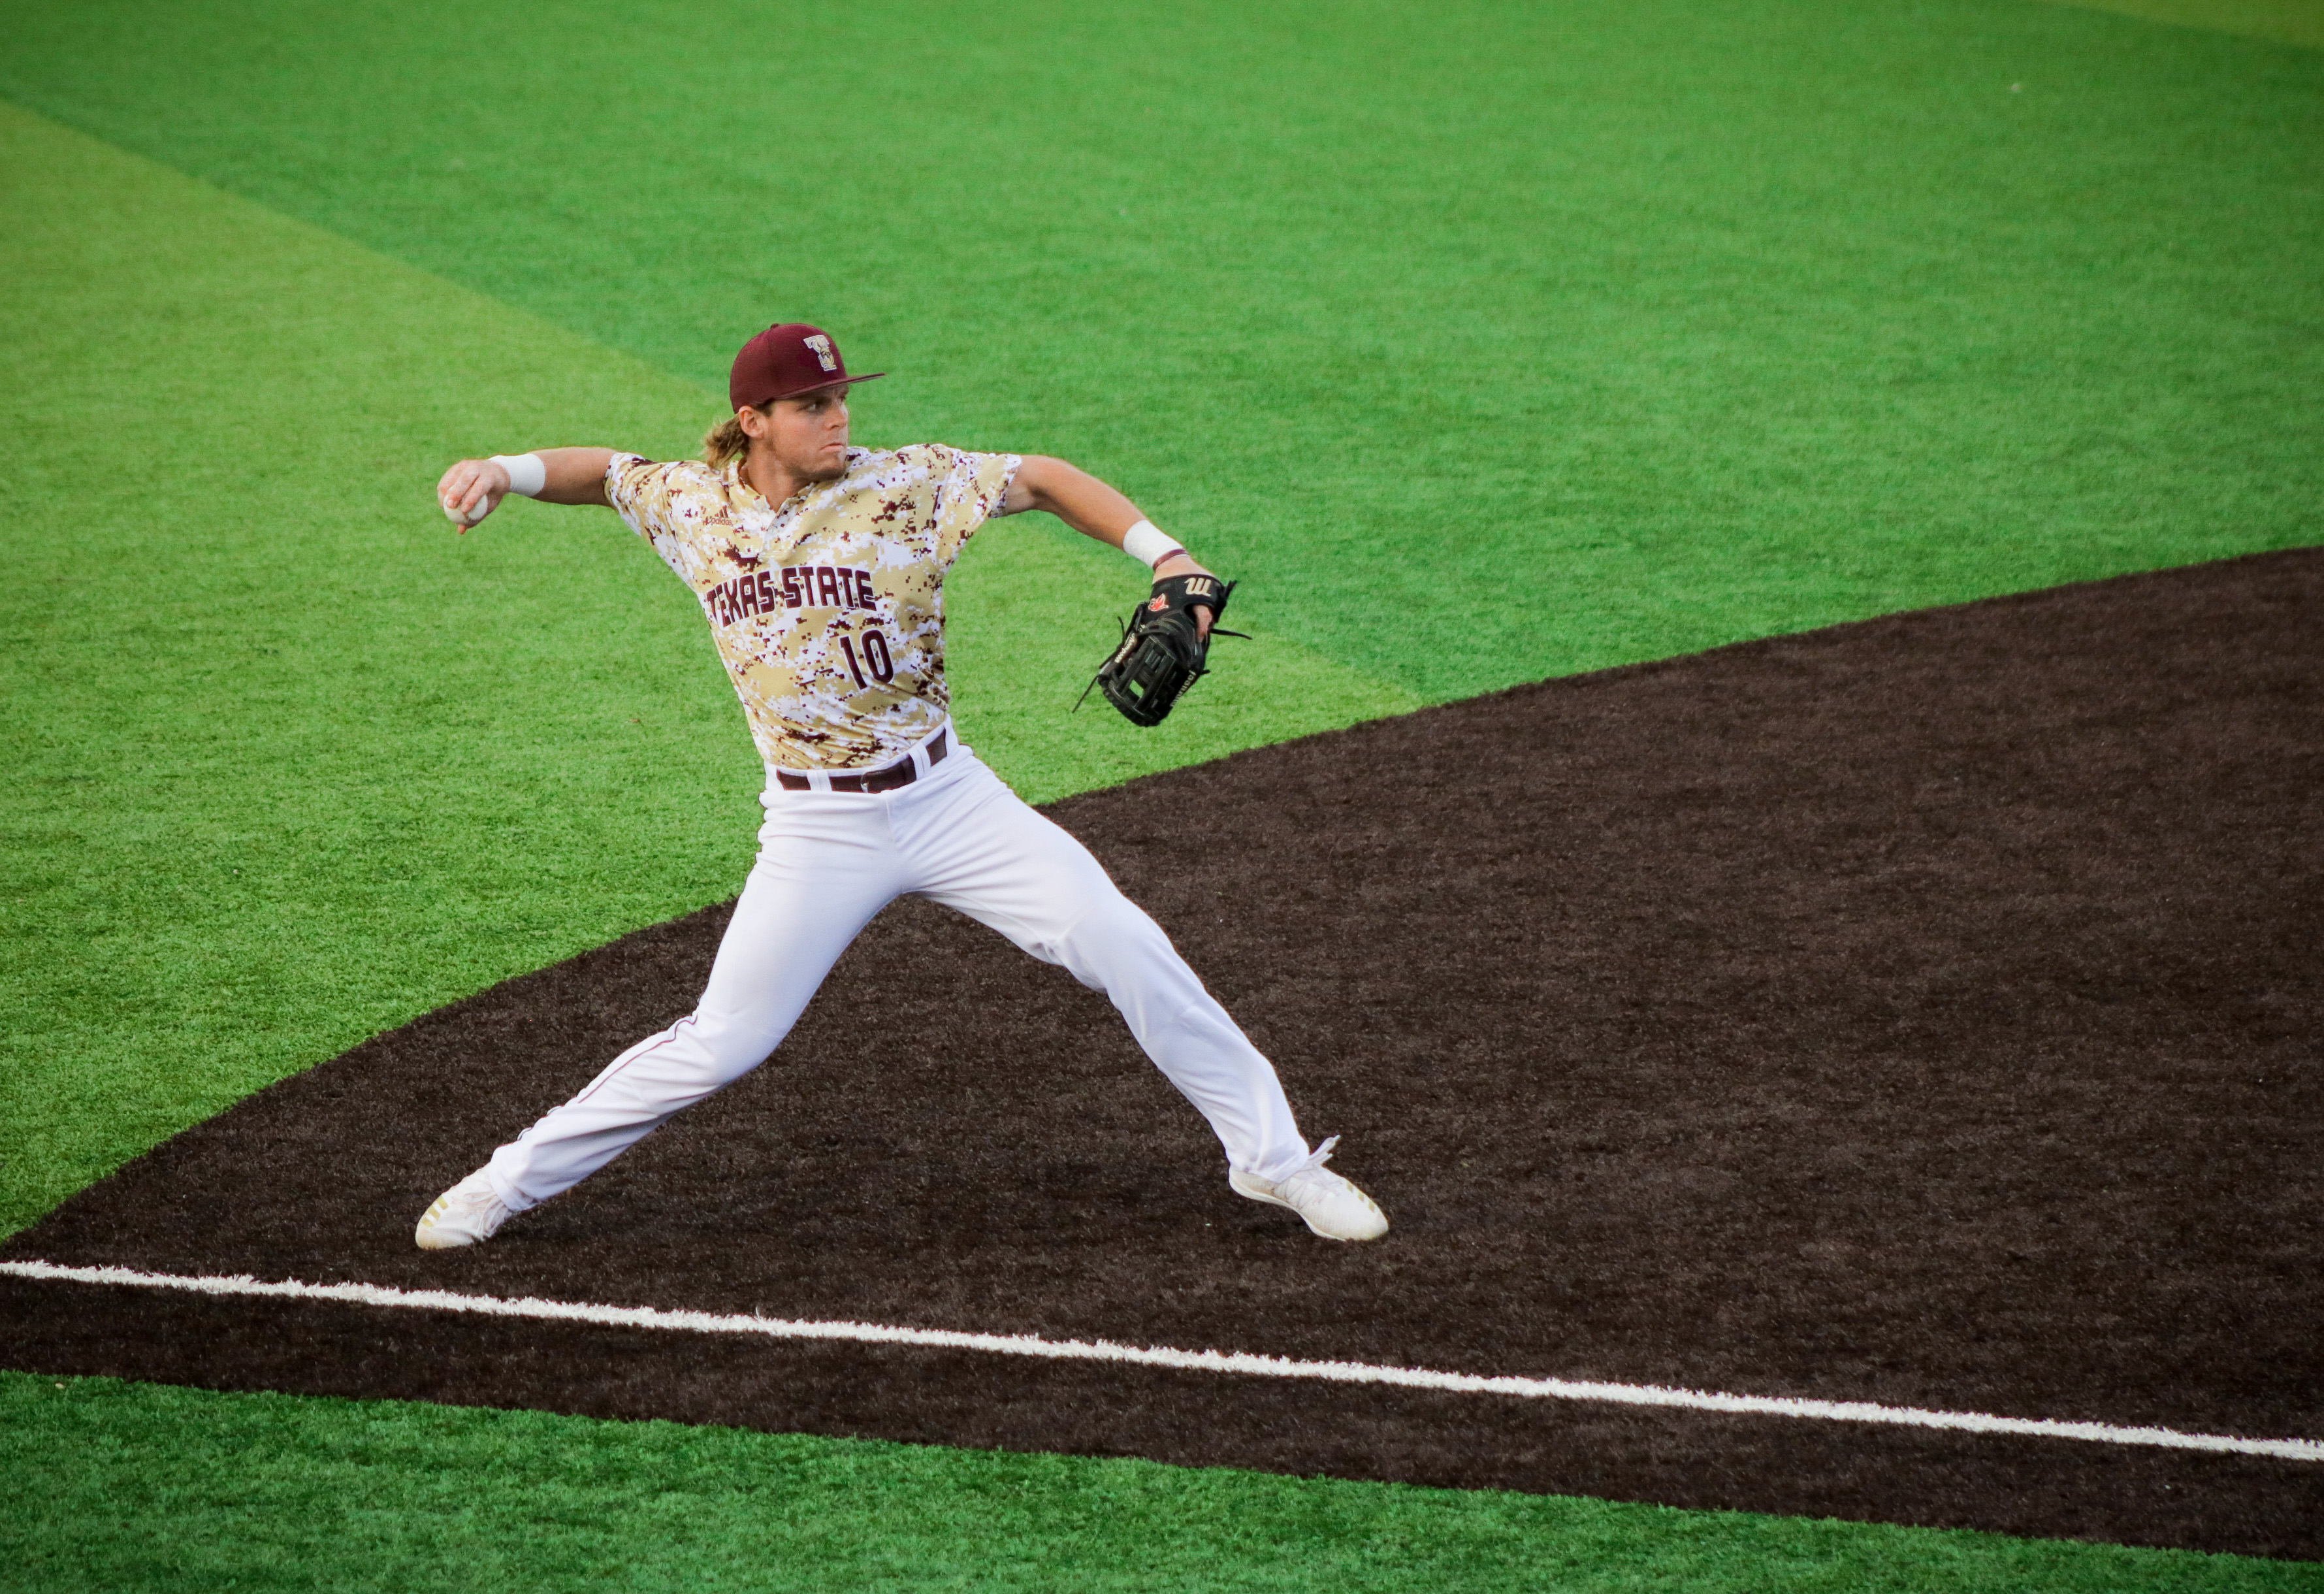 Texas State Bobcat infielder Justin Thompson in a maroon, white and gold digital camo uniform throwing a baseball while at third base at Bobcat Ballpark in San Marcos, TX